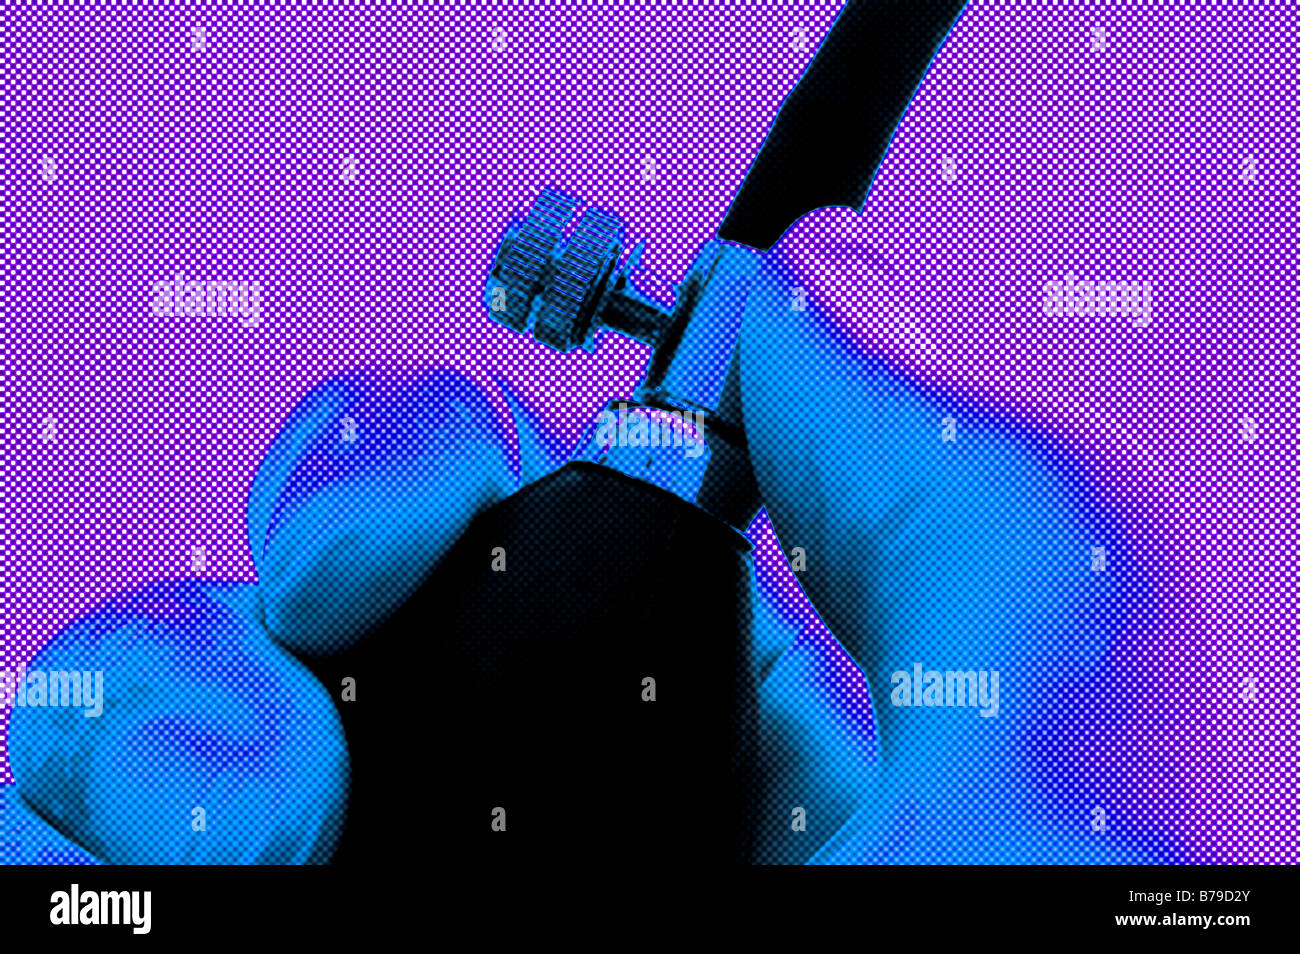 closeup view of pressure valve on a mercury blood pressure monitor Sphygmomanometer - Stock Image